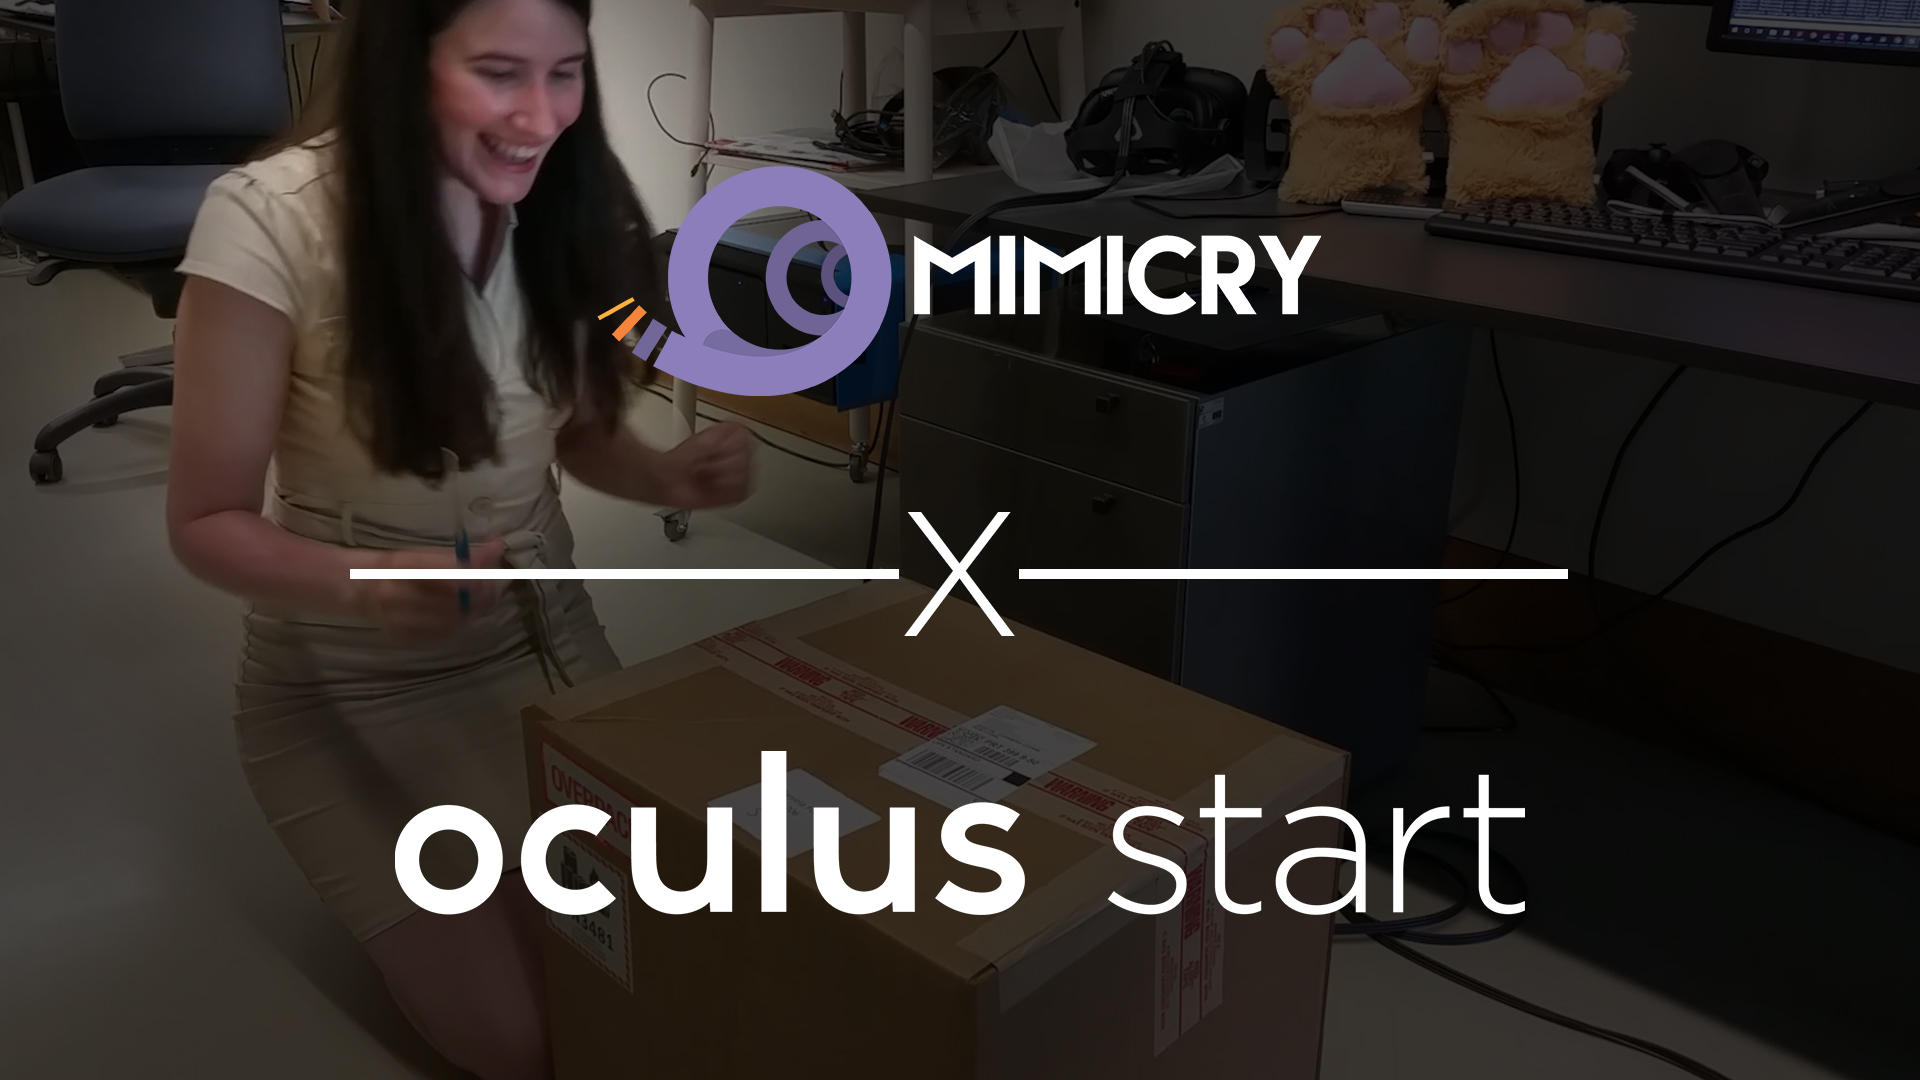 Mimicry joins Oculus start program